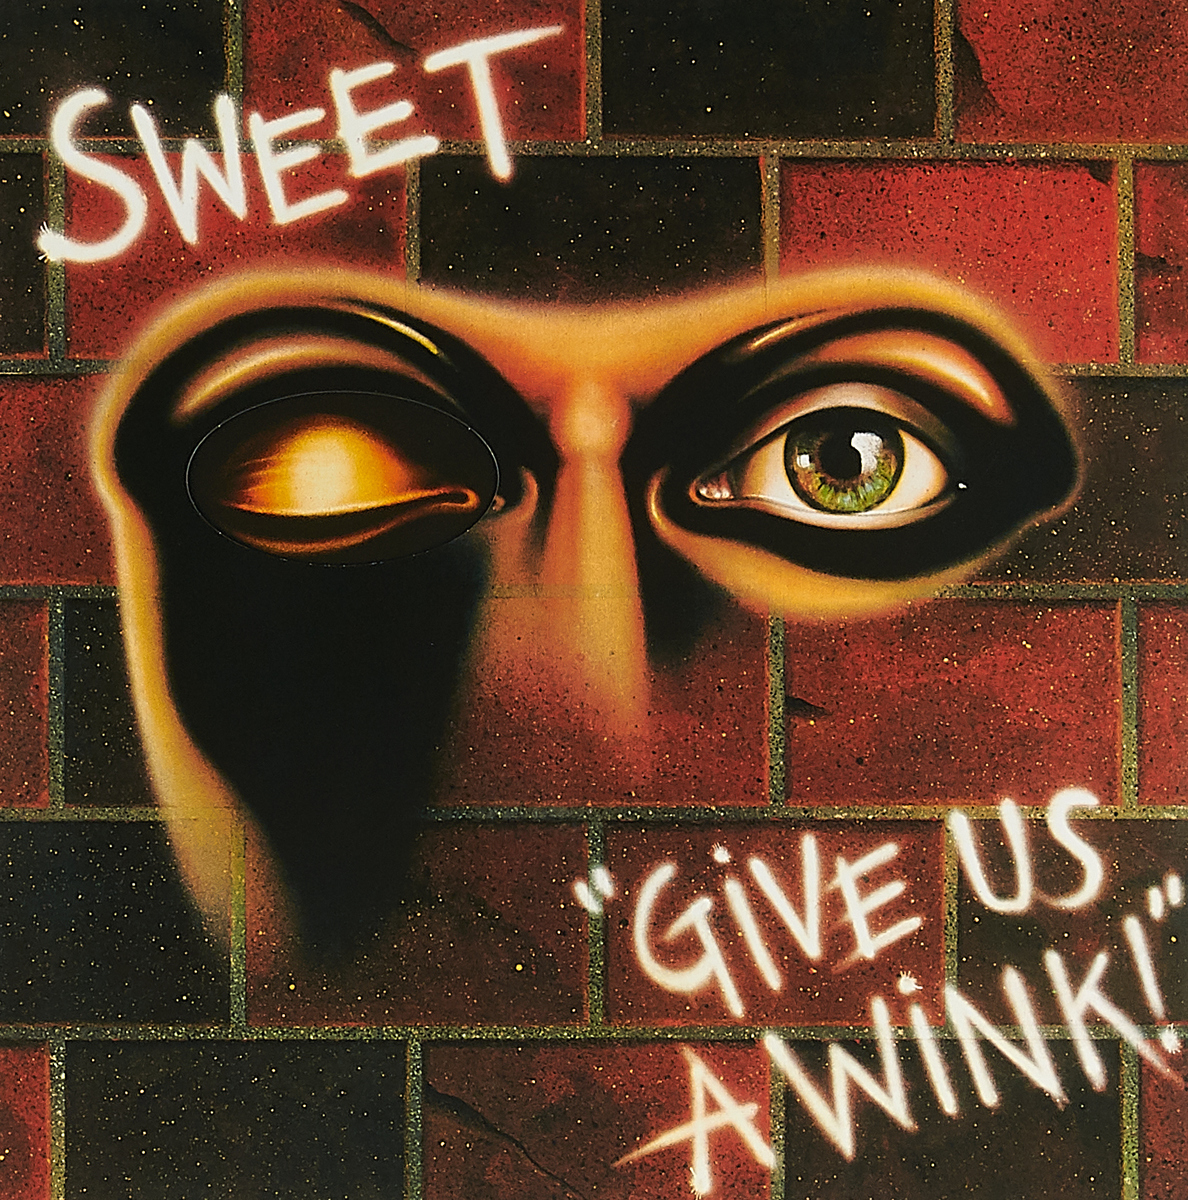 Sweet Sweet. Give Us A Wink (New Vinyl Edition) (LP) wink подвесная люстра wink n2748 5